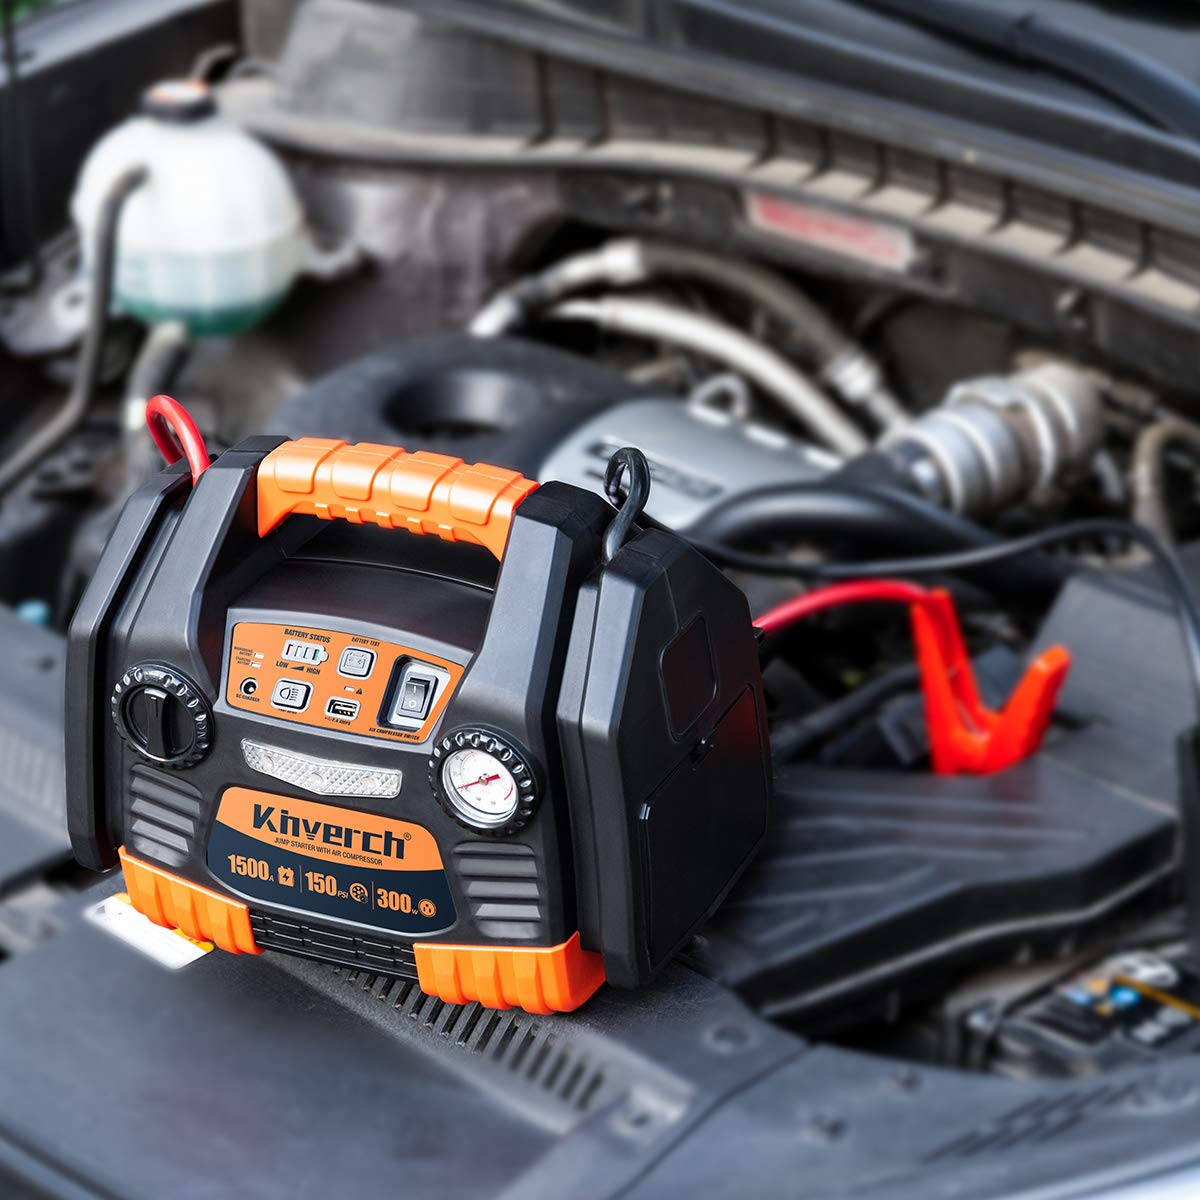 Kinverch Portable Power Station Jump Starter 1500 Peak/750 Instant Amps with 300W Inverter,150 PSI Air Compressor by kinverch (Image #7)